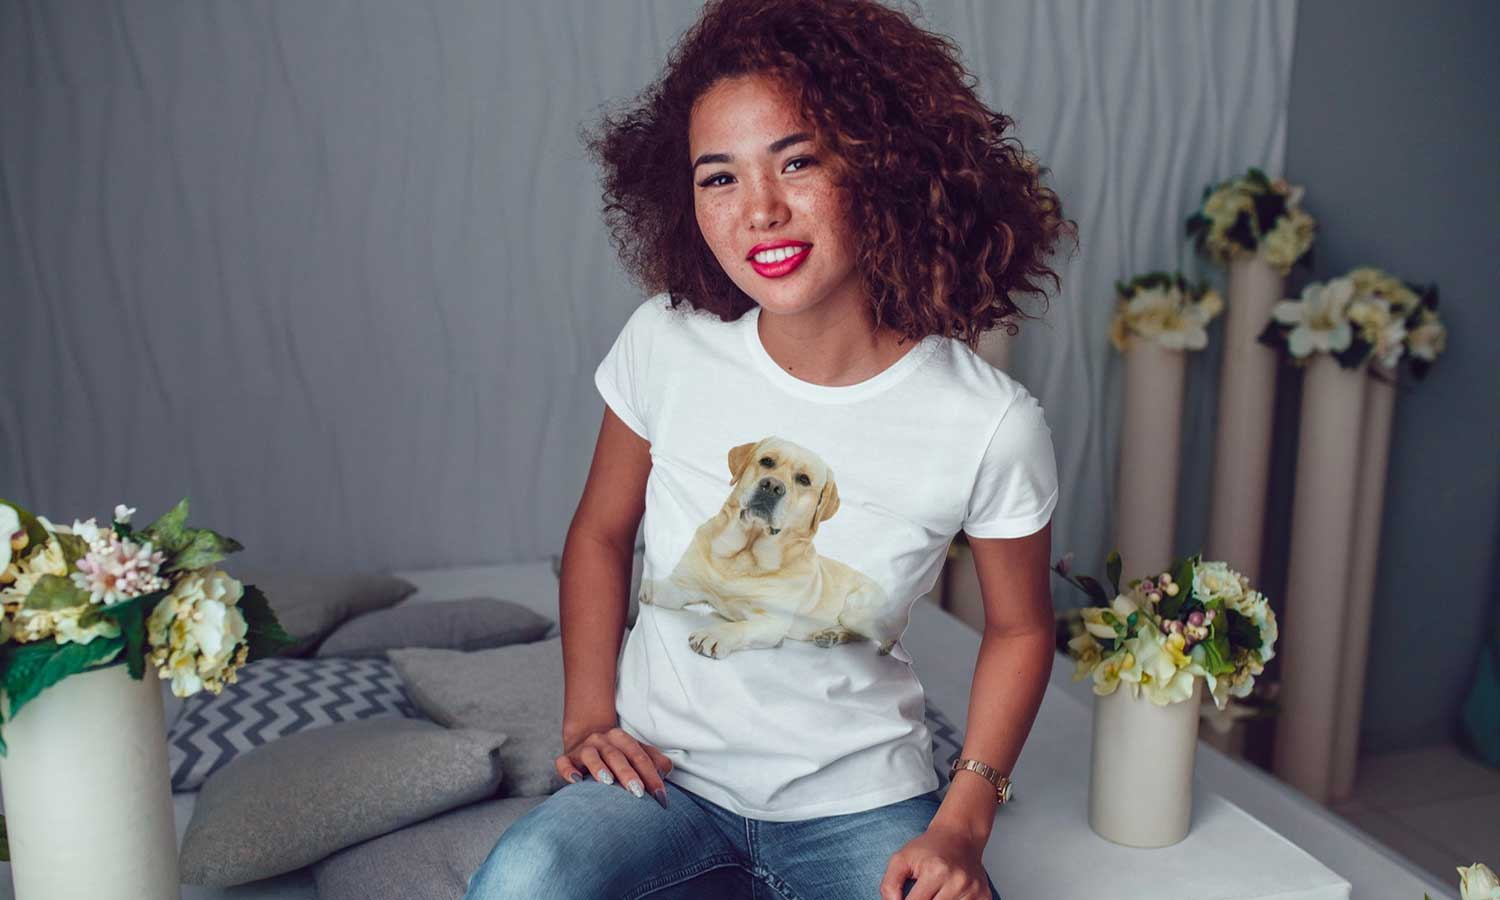 Customized Printed T-Shirt With Your Photo